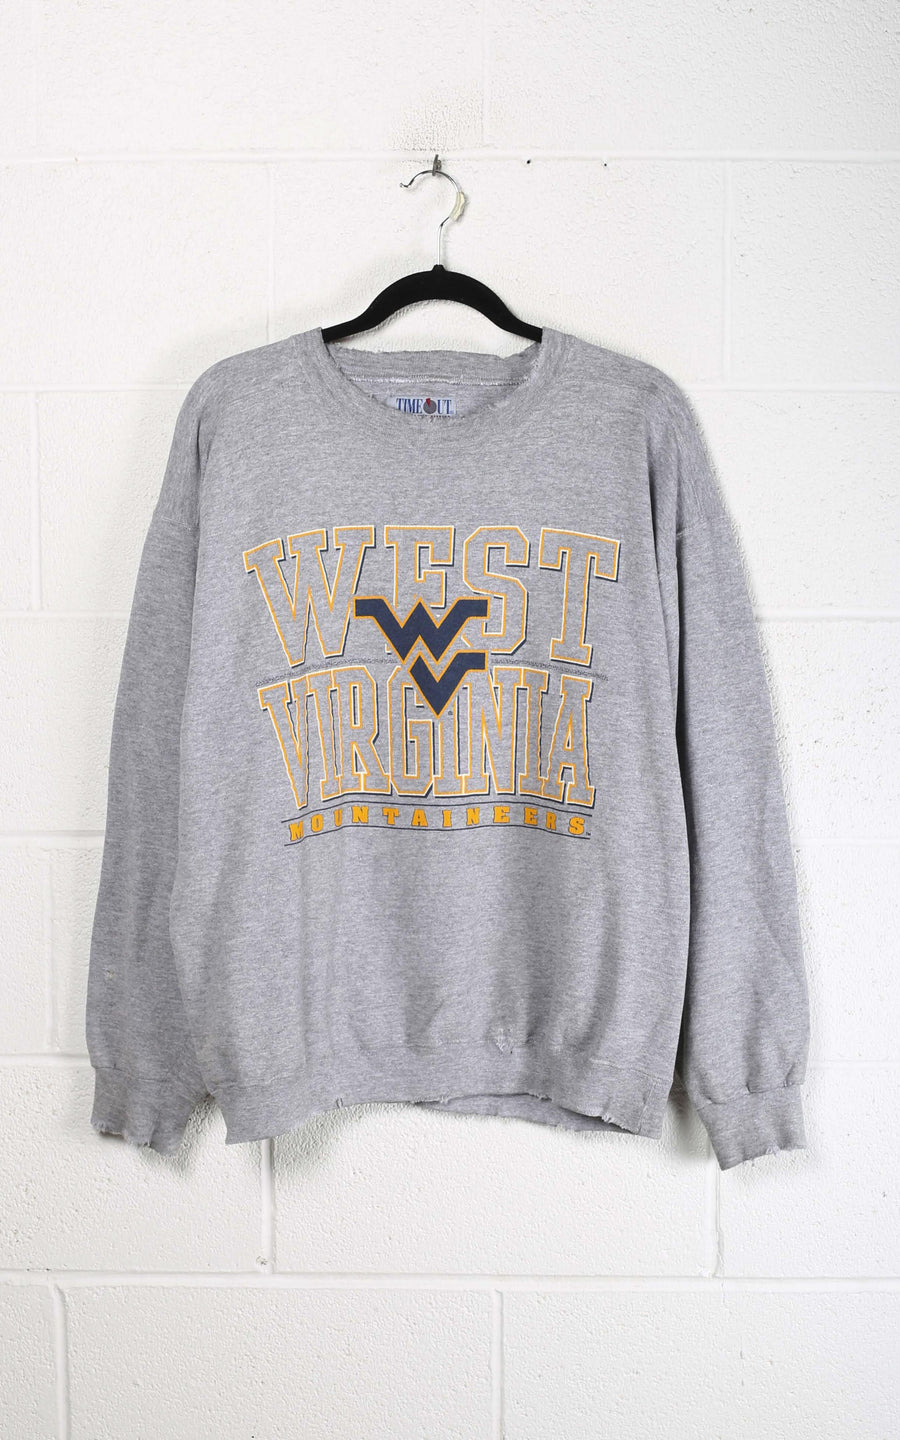 Vintage West Virginia Distressed Sweatshirt